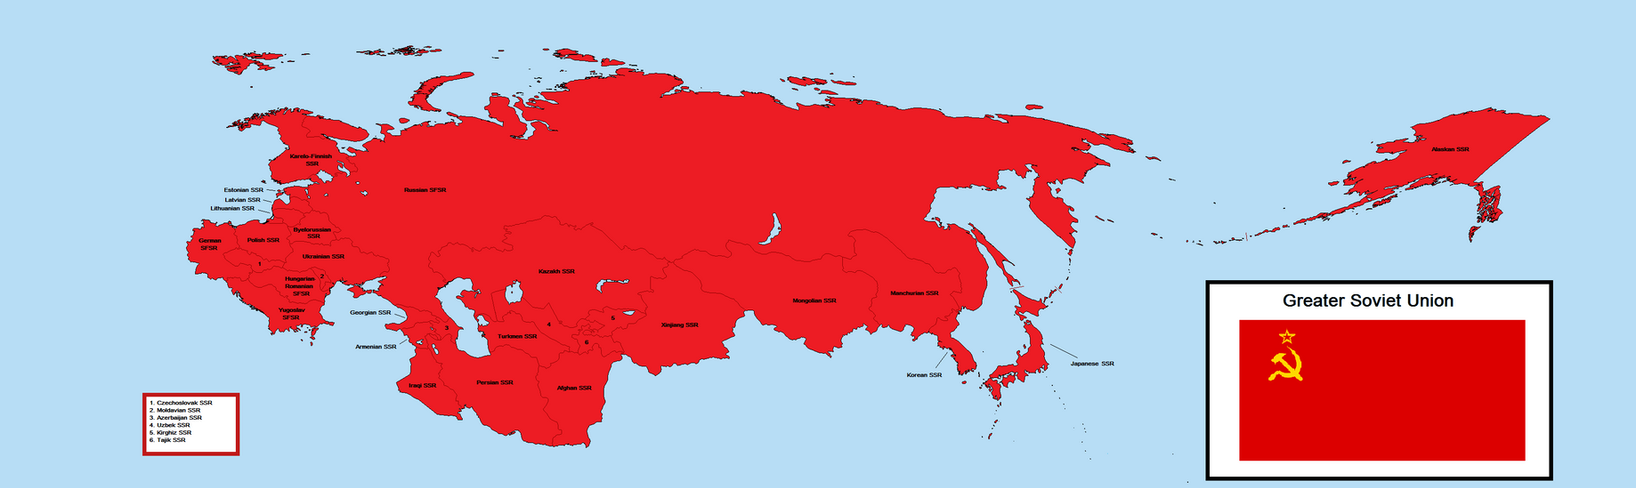 Greater Soviet Union 2 by ARPS123